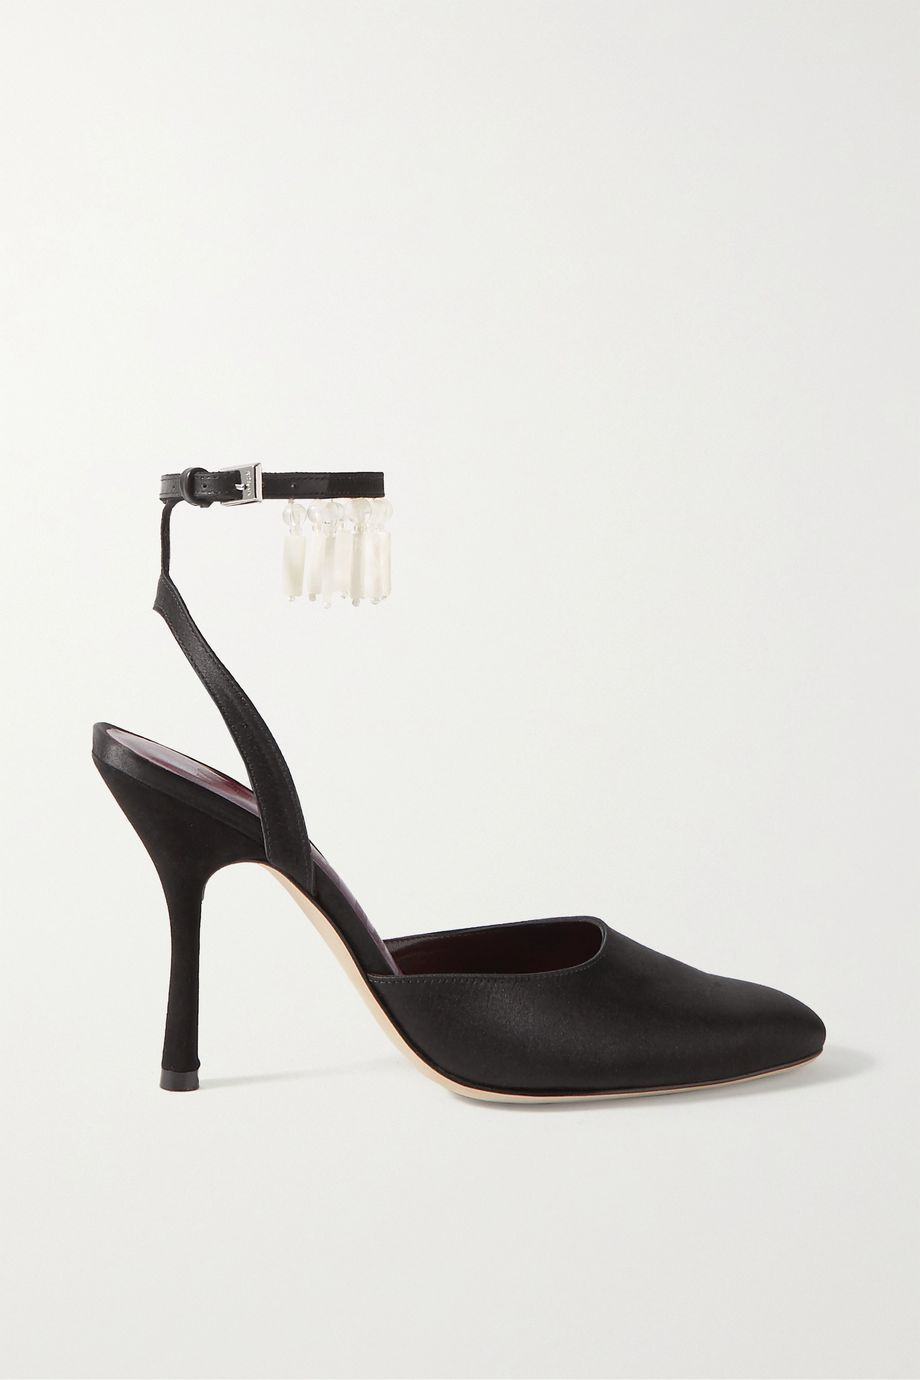 STAUD Carla beaded satin pumps